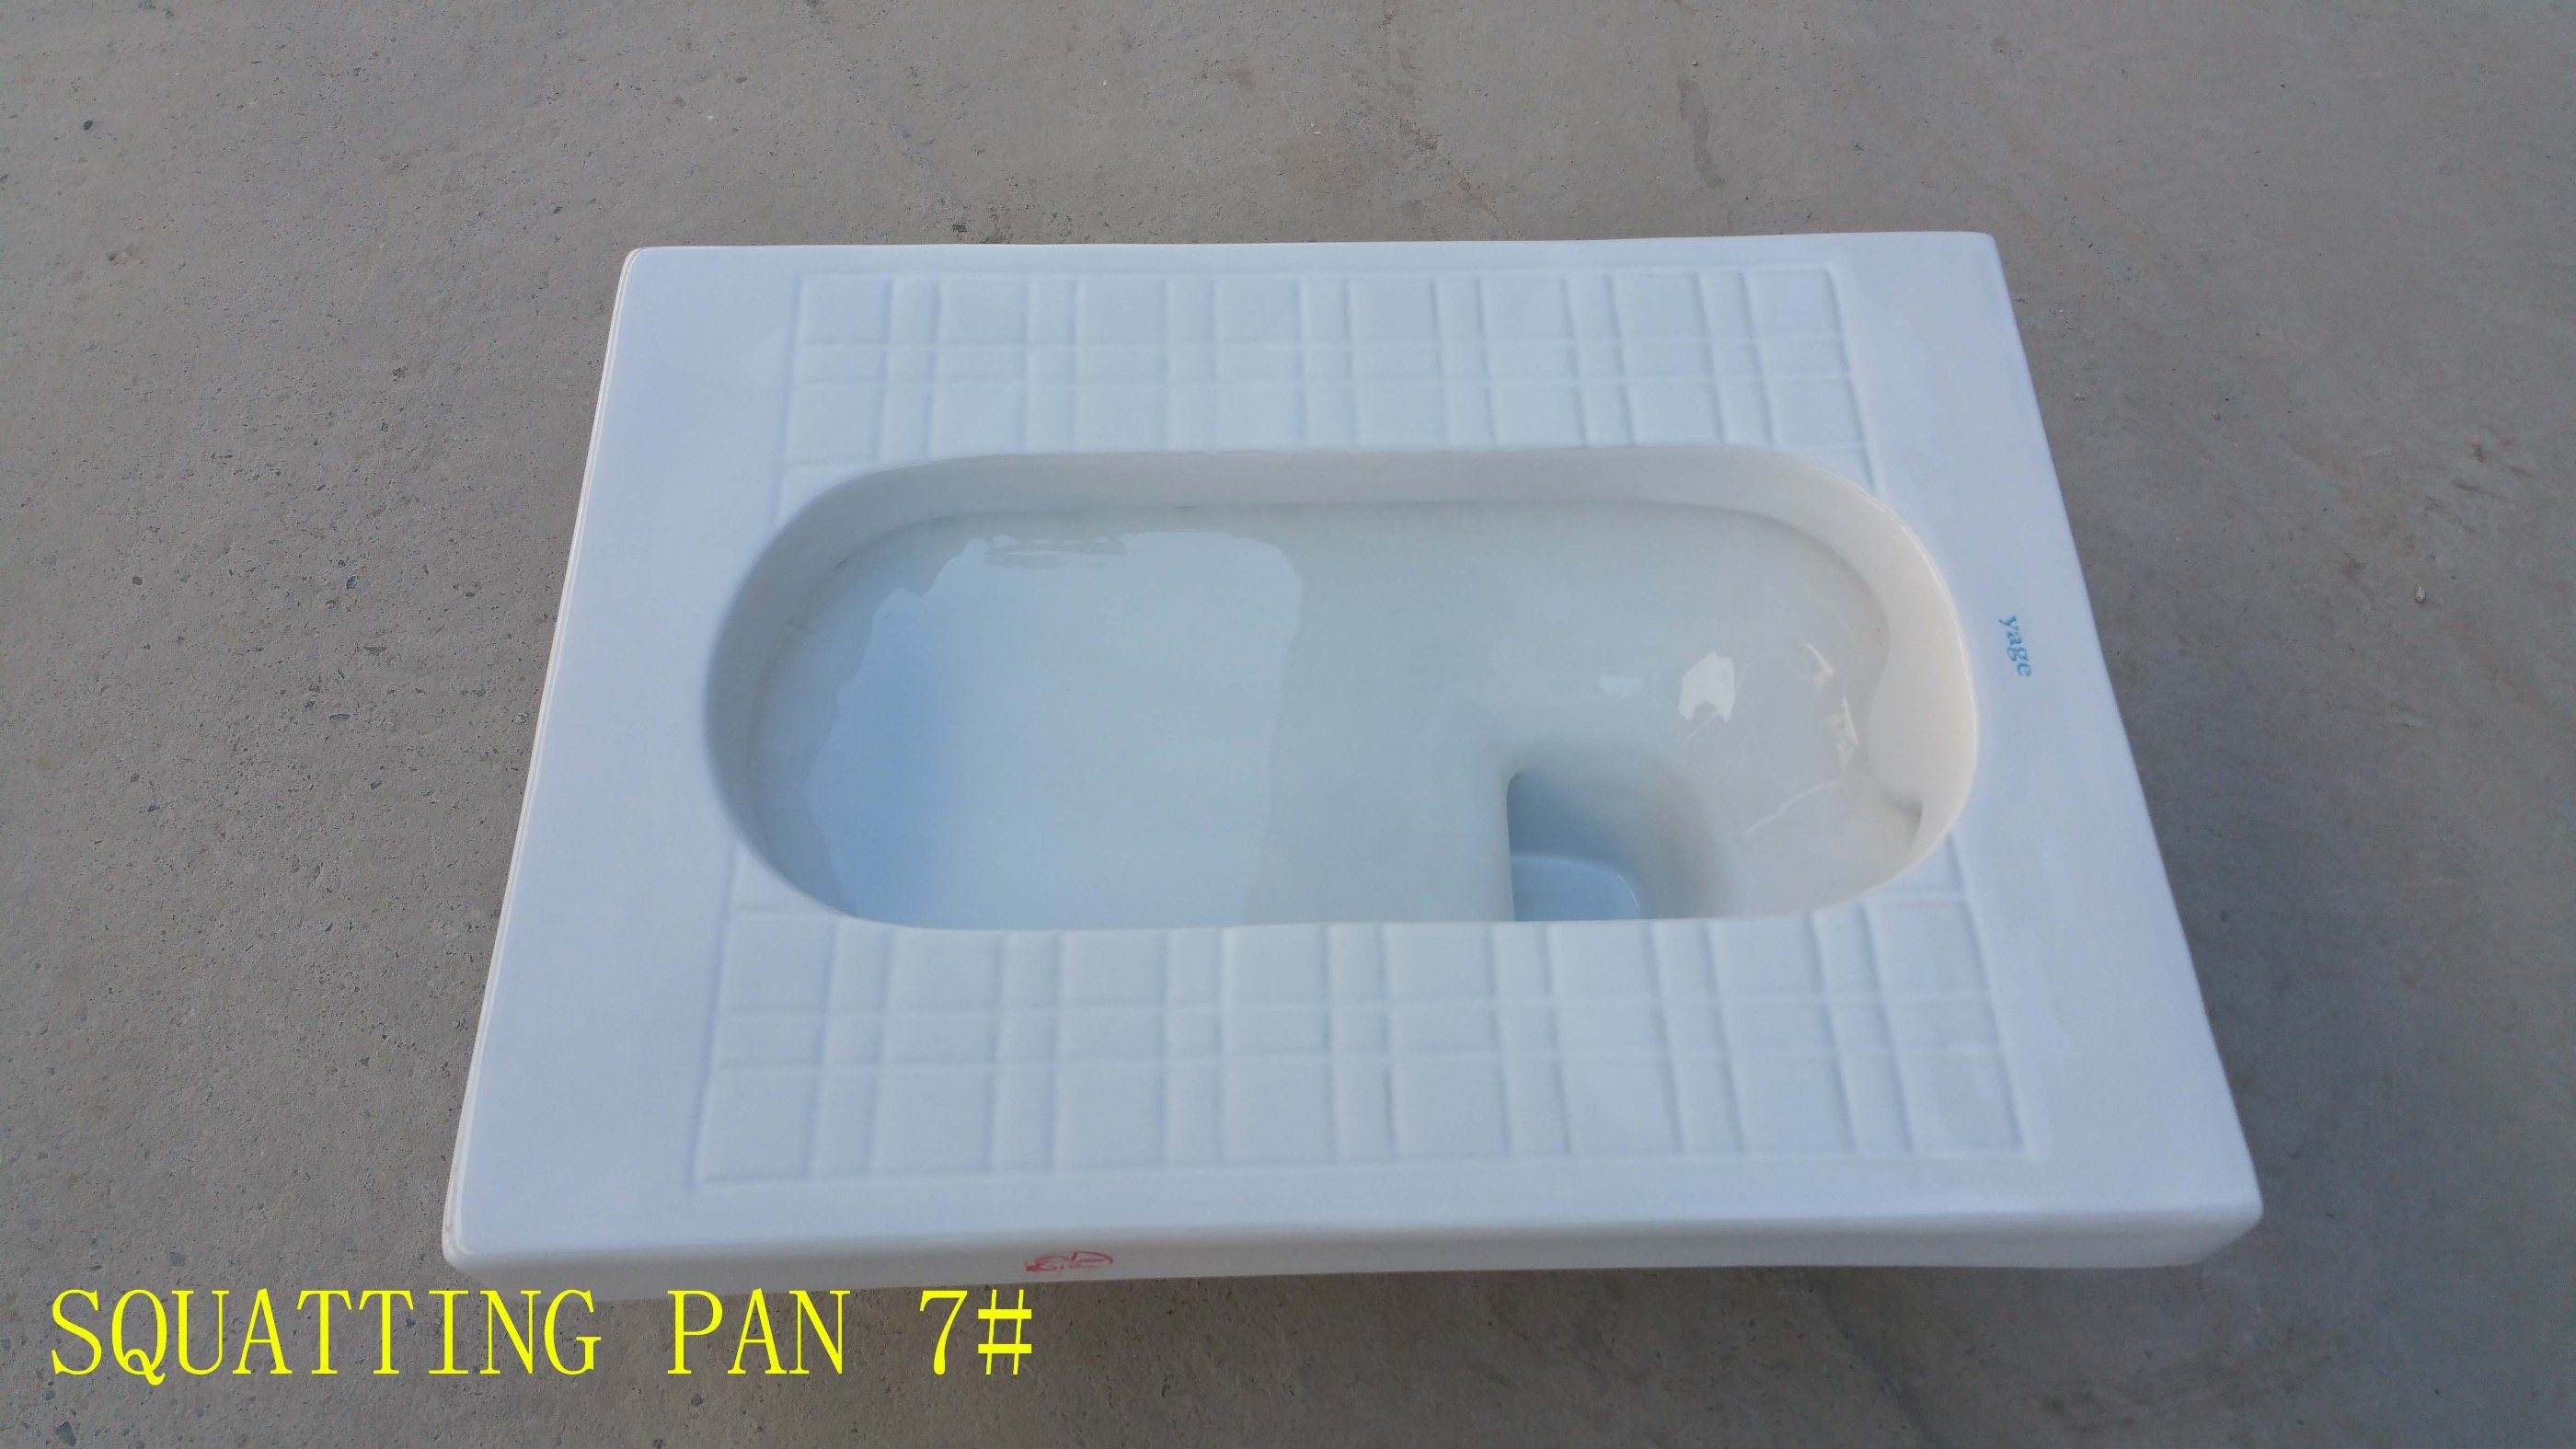 Hot Ceramic Water Saving with S-Trap Squatting Pan 7#